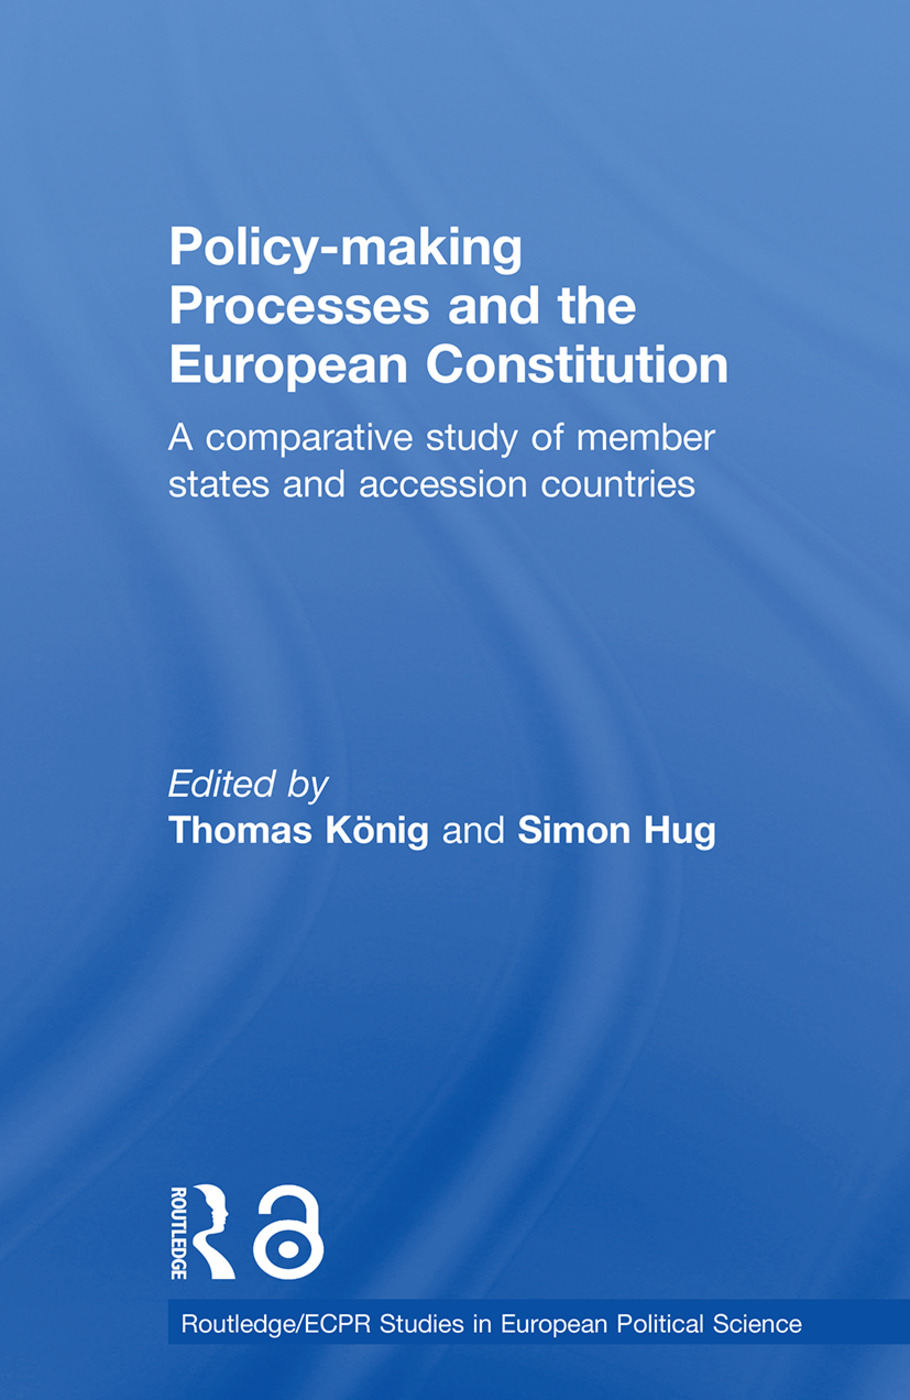 Policy-Making Processes and the European Constitution: A Comparative Study of Member States and Accession Countries book cover